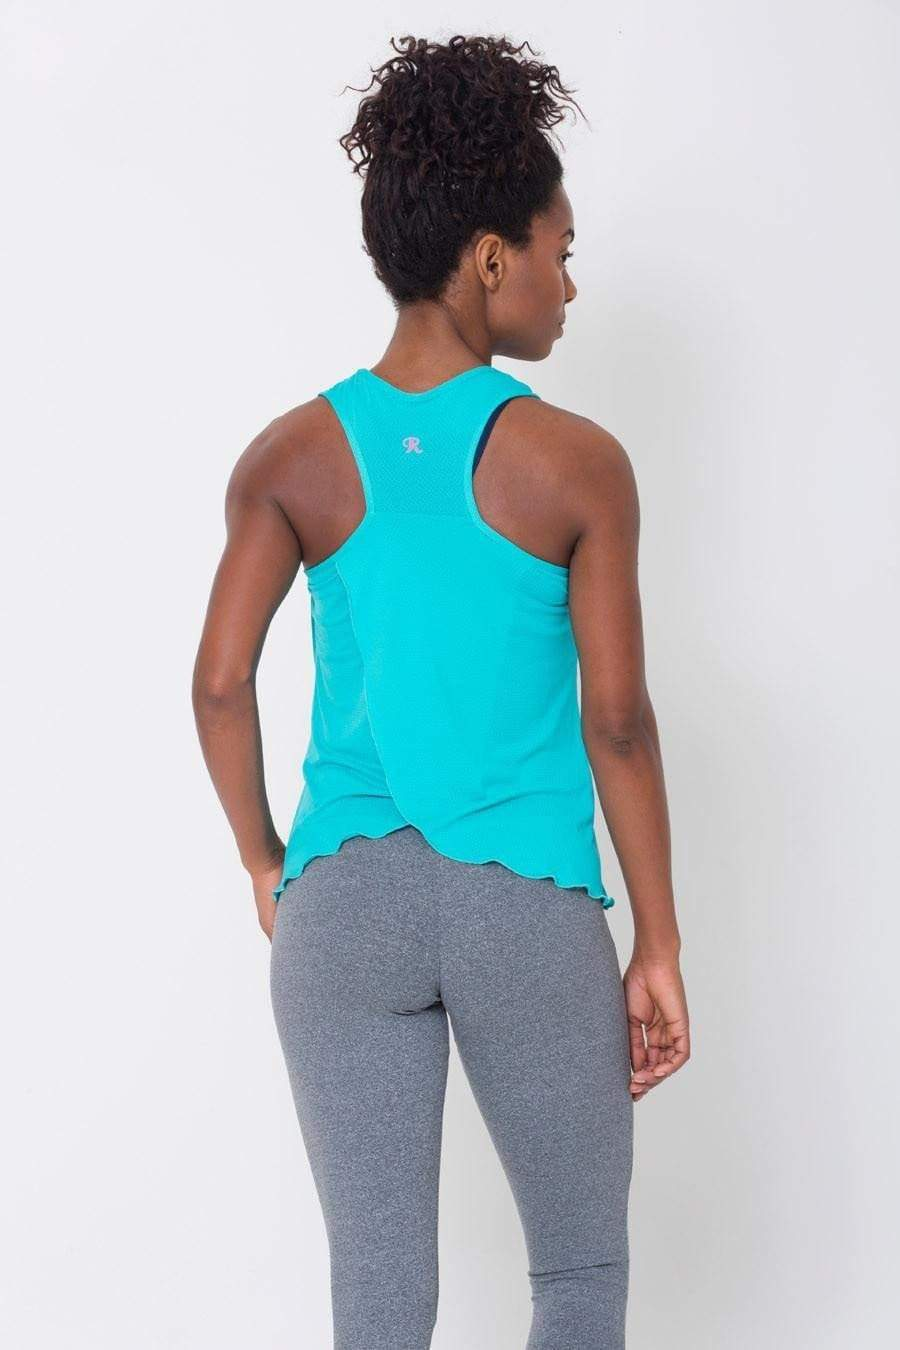 Atoll Crossover Back Tank - Sam's Fitness Goods